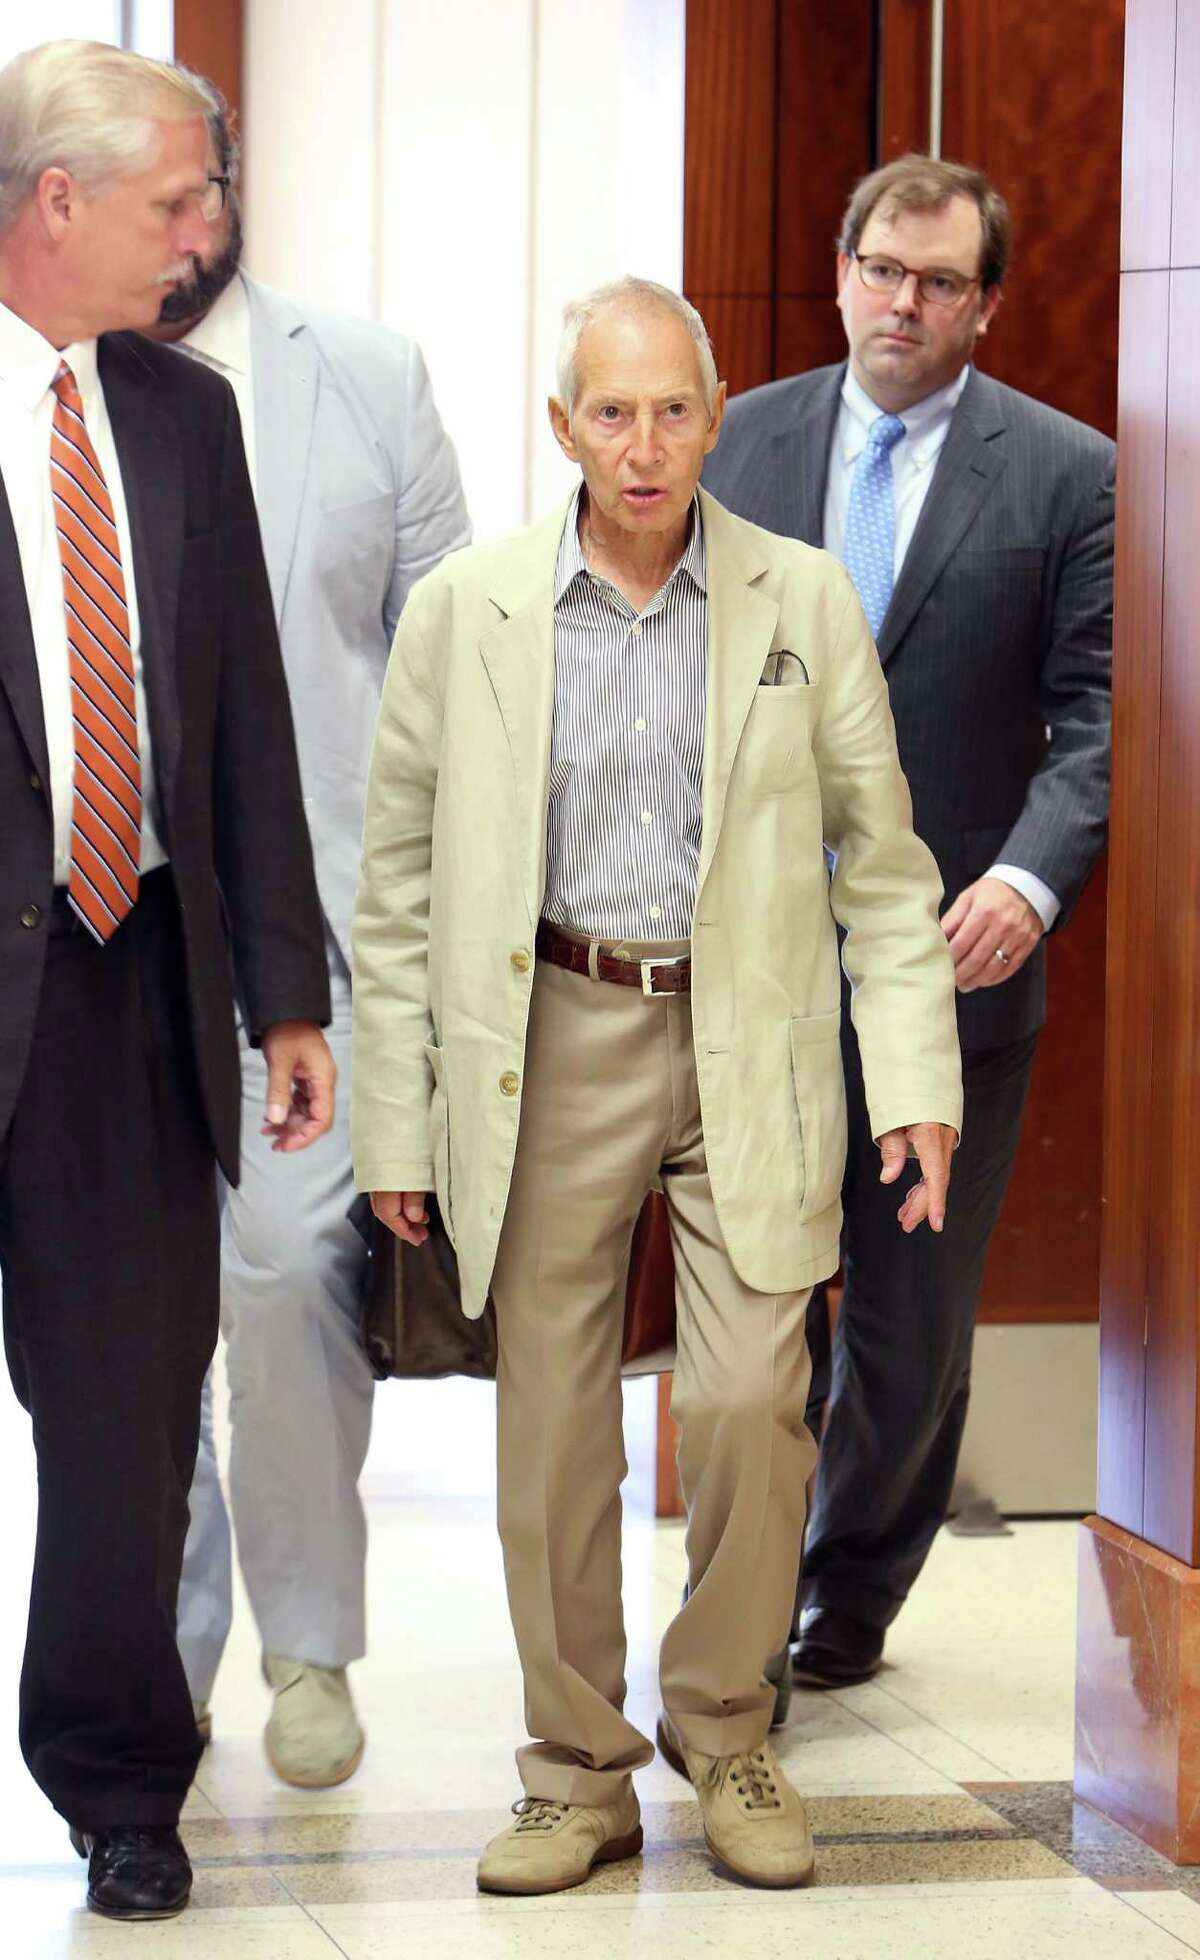 Robert Durst walks out of court after resetting his hearing at the Harris County Criminal Justice Center in August 2014.